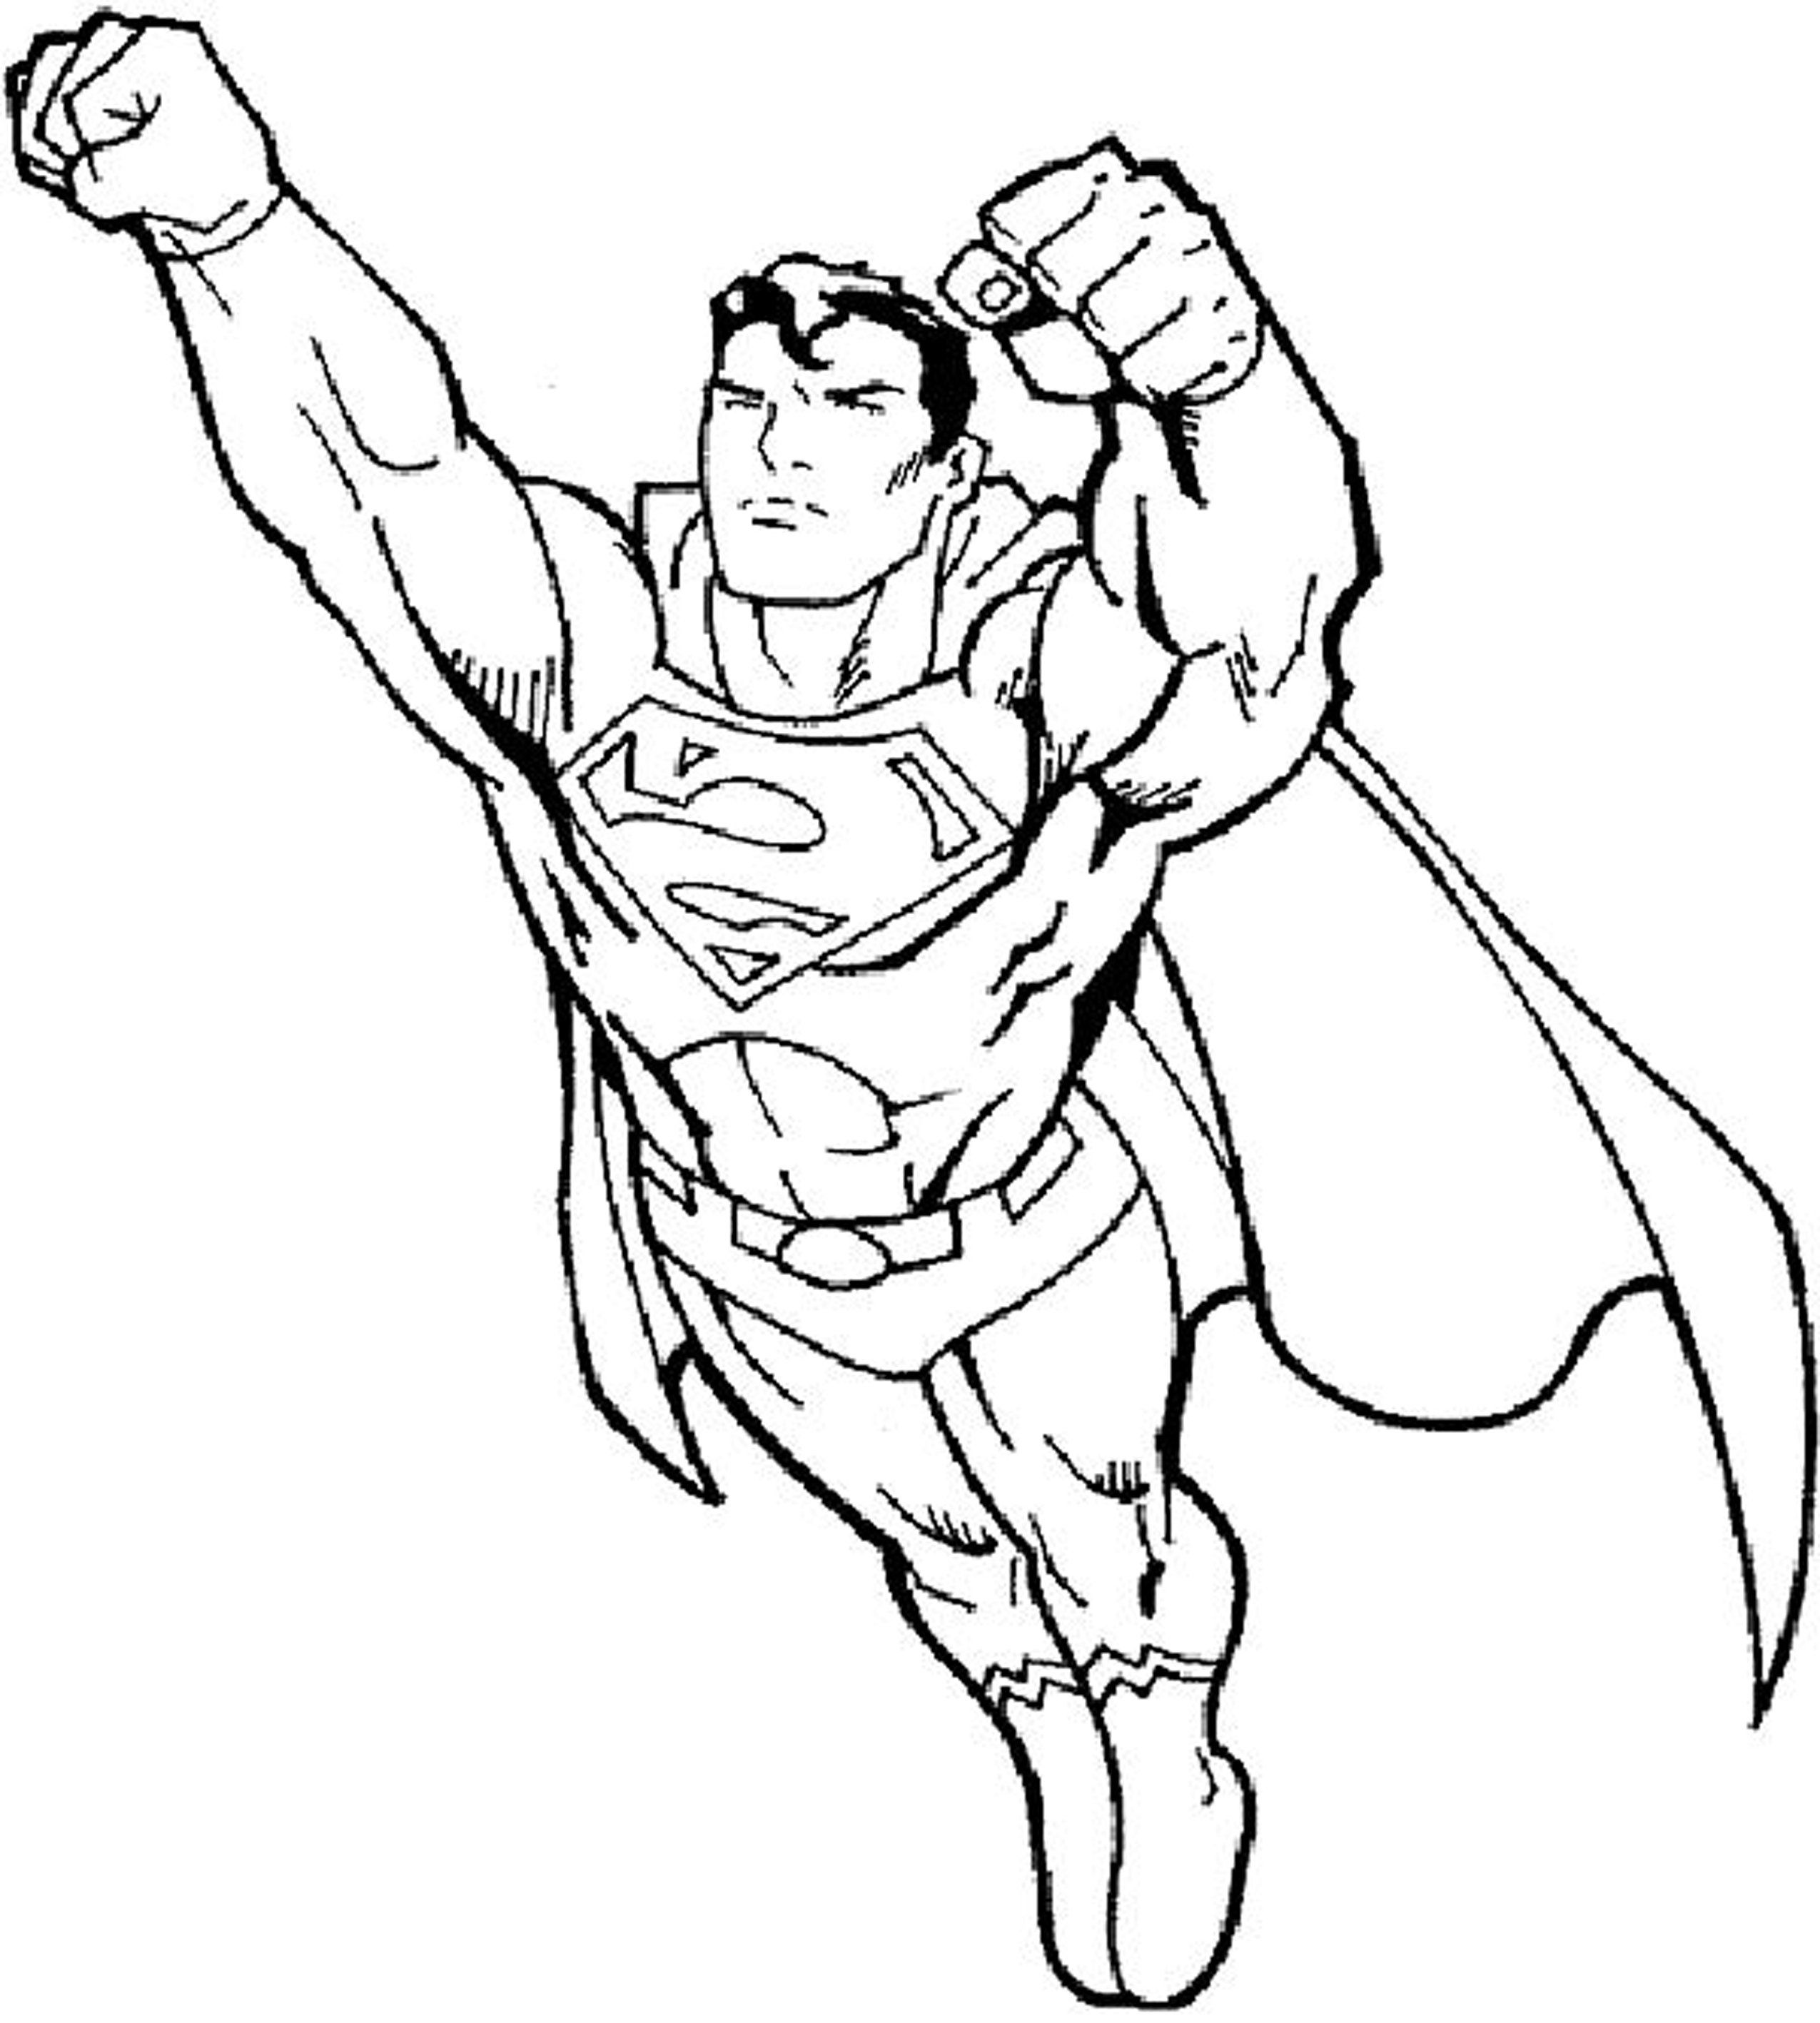 Free Coloring Pages For Boys Superman Printable Kids Colouring Pages Superman Coloring Pages Coloring Pages For Boys Superhero Coloring